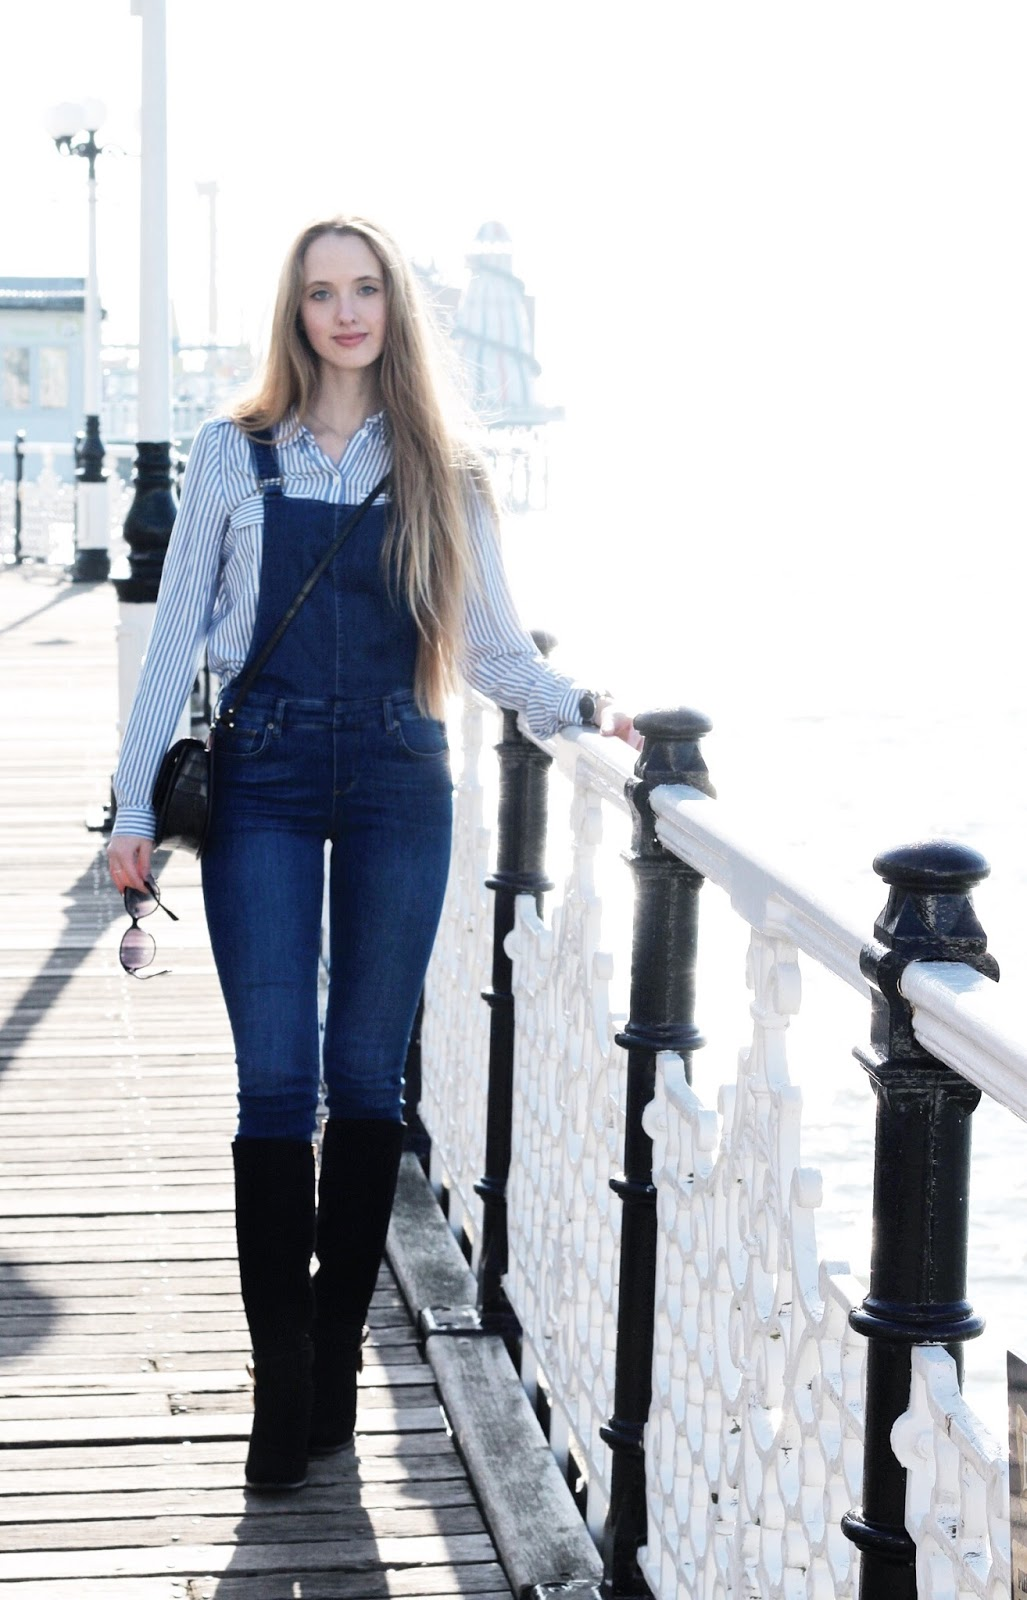 Fashion Blog Styling Denim Dungarees in Winter